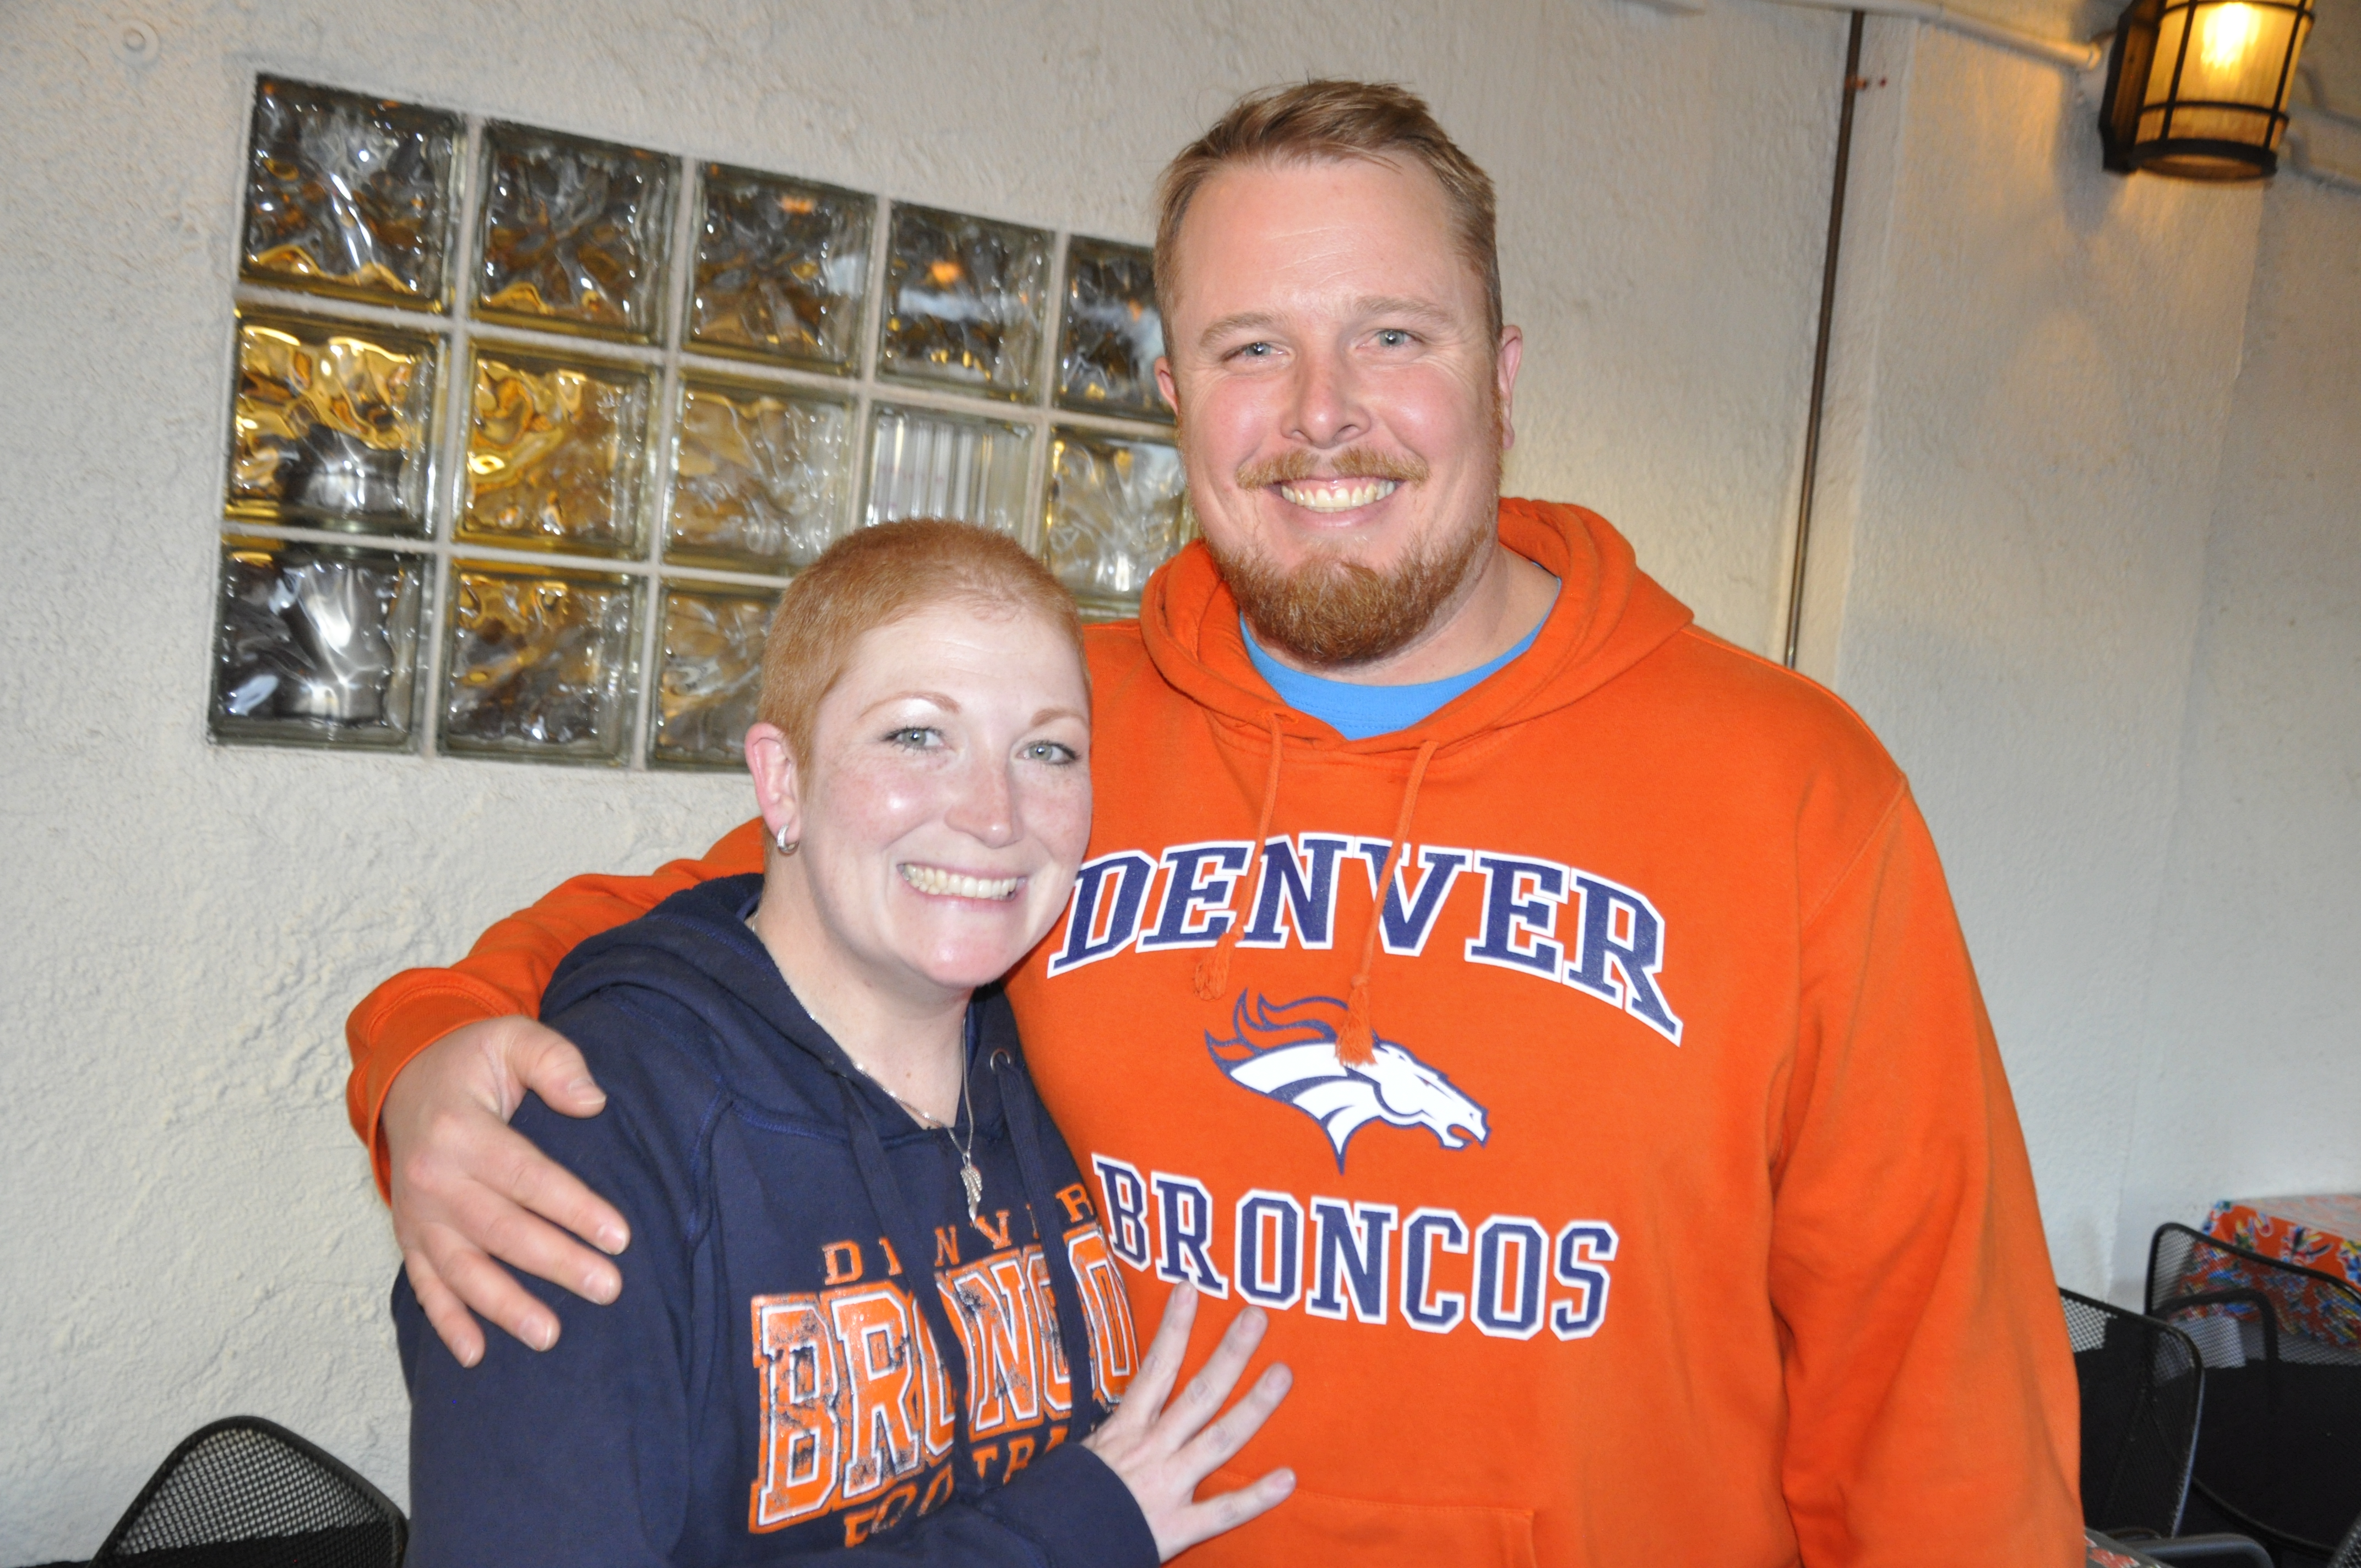 Cancer patient prepping for trip to see Broncos in Super Bowl